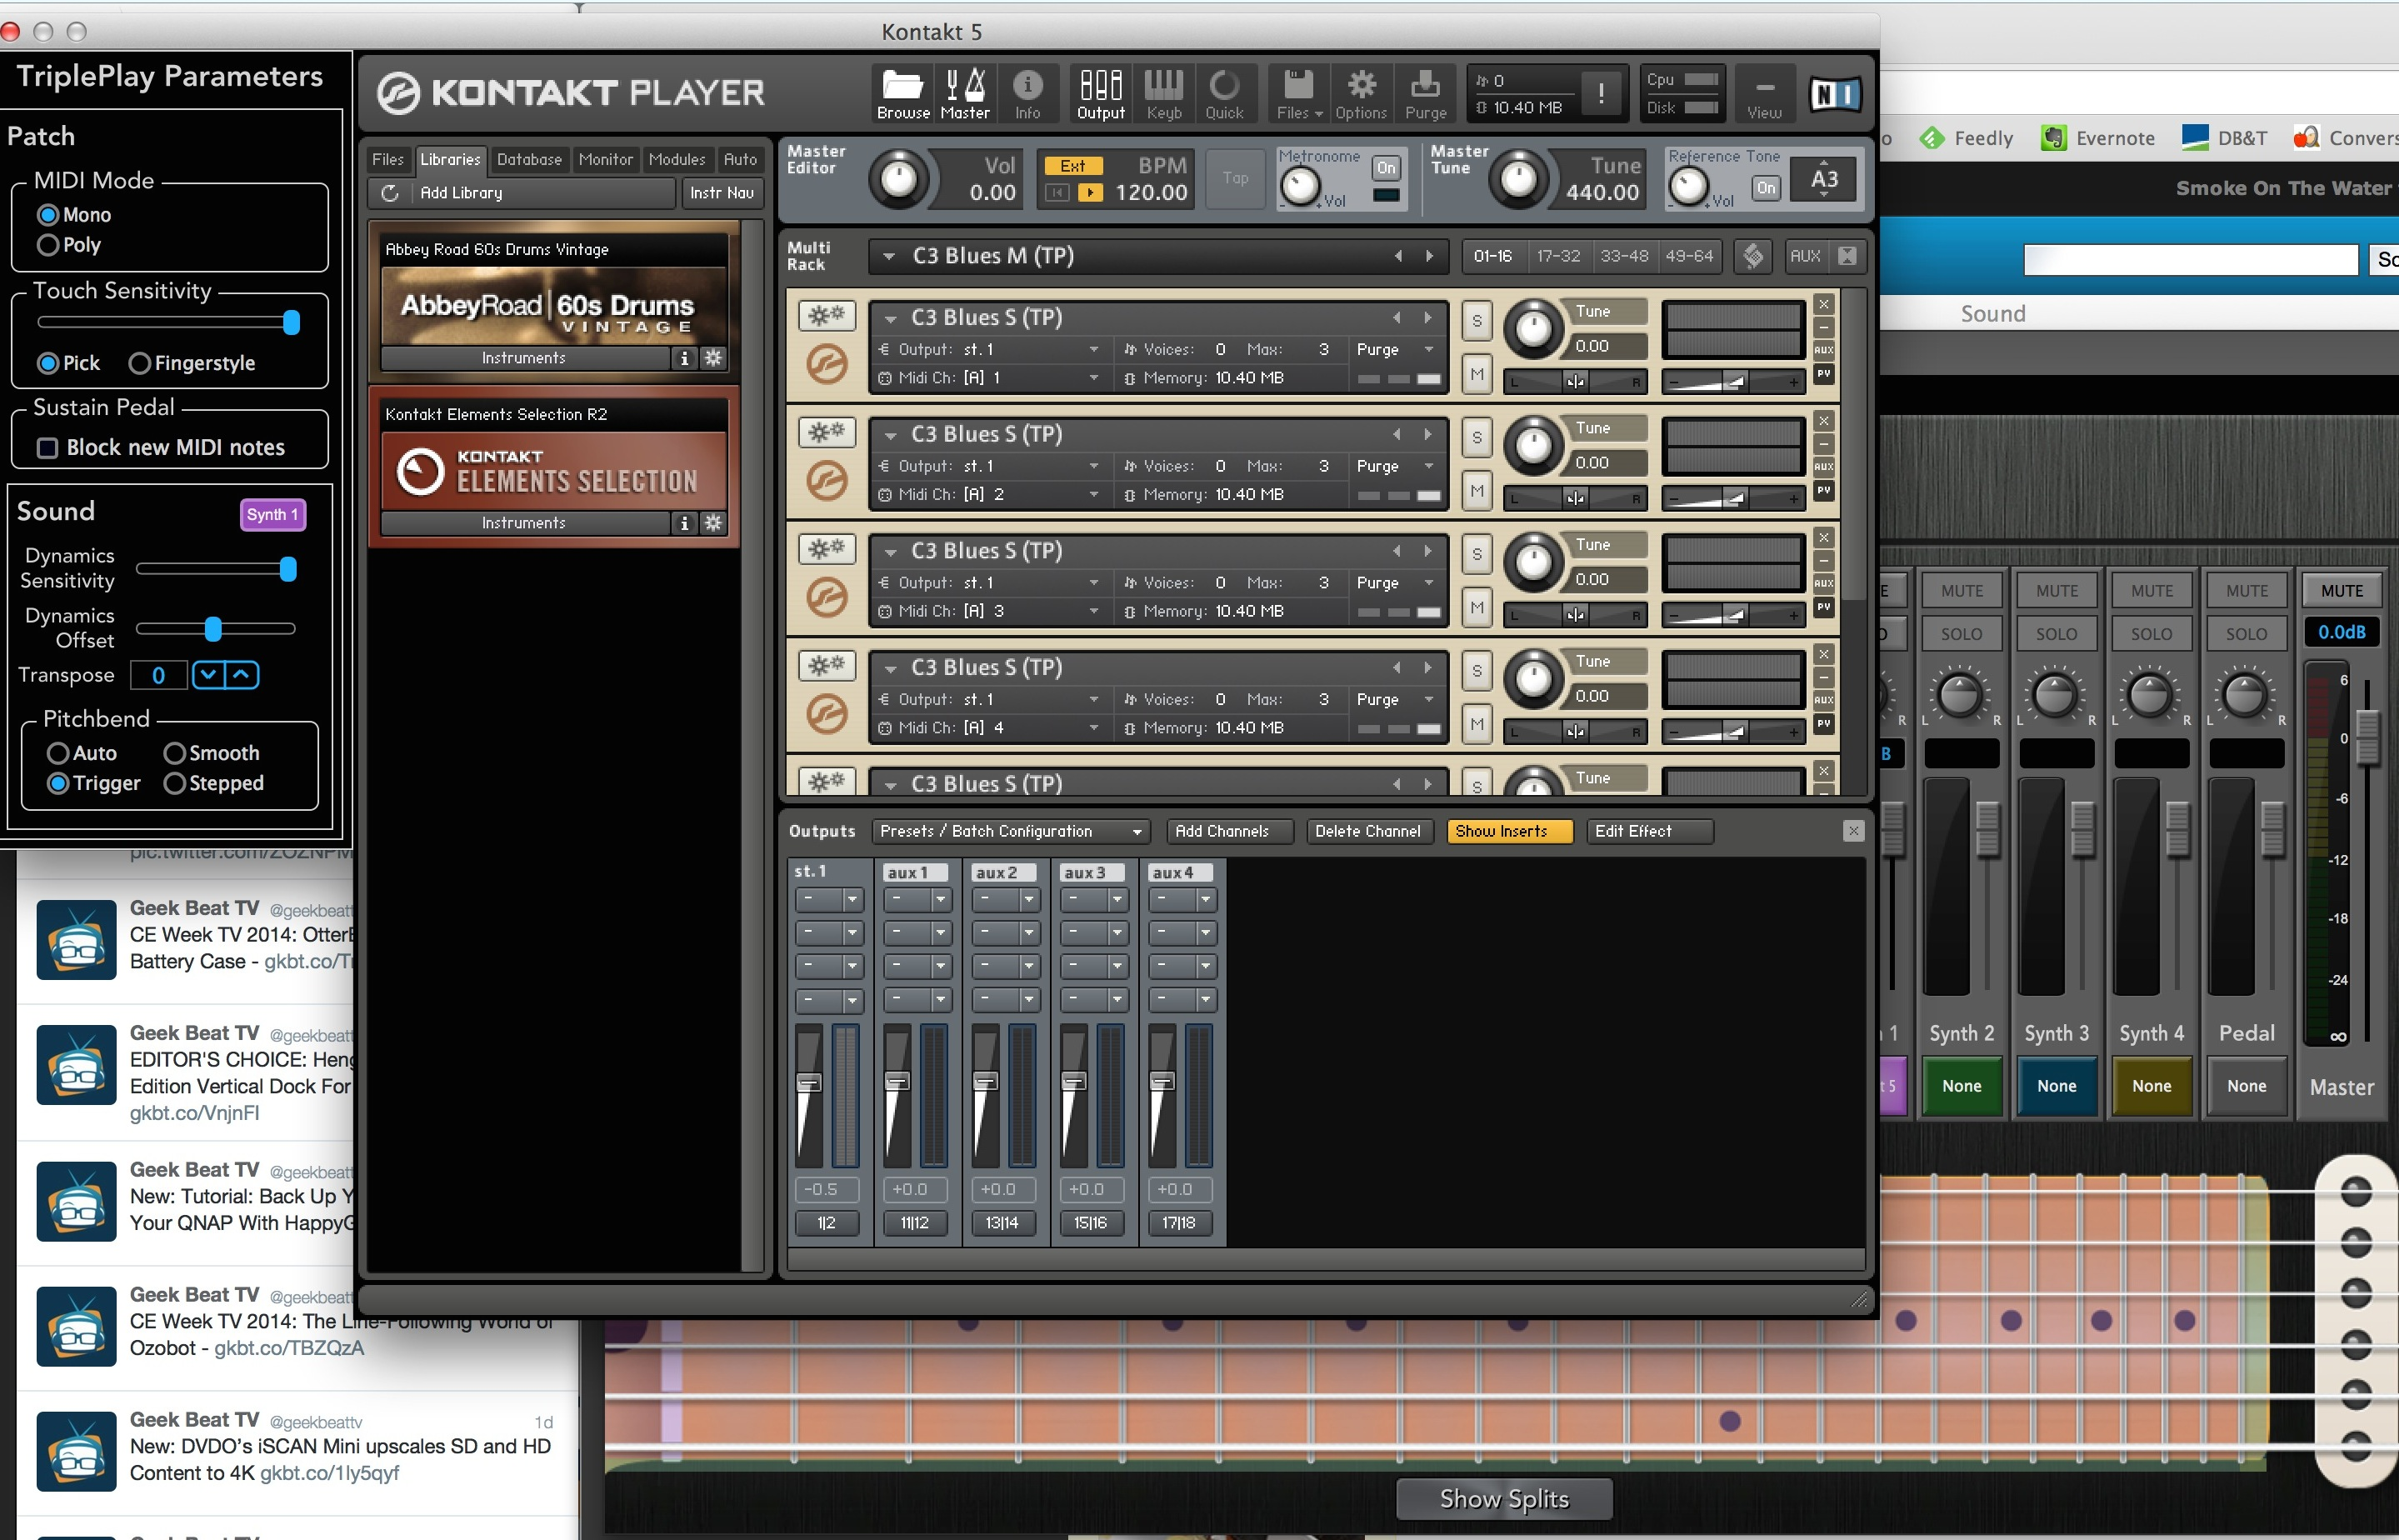 Fishman-triple-play-plug-in